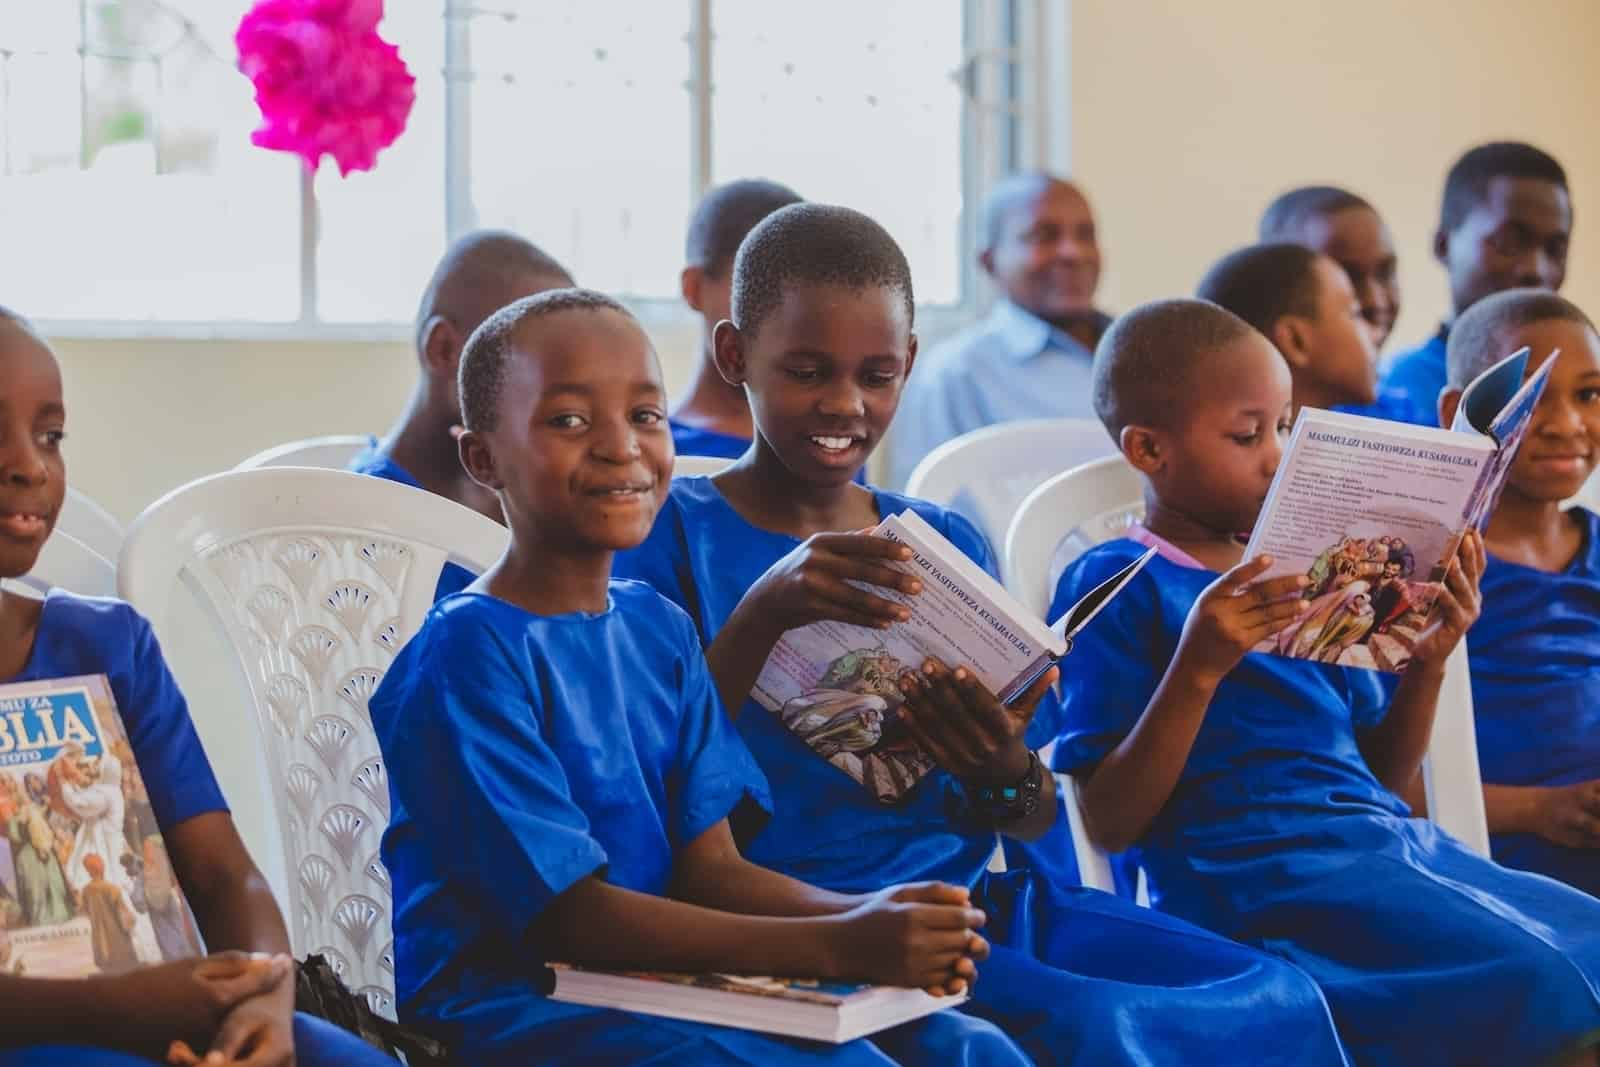 A group of girls in Tanzania wearing blue uniform dresses sit on white plastic chairs, each holding and reading Bibles. The girl in the foreground smiles at the camera.